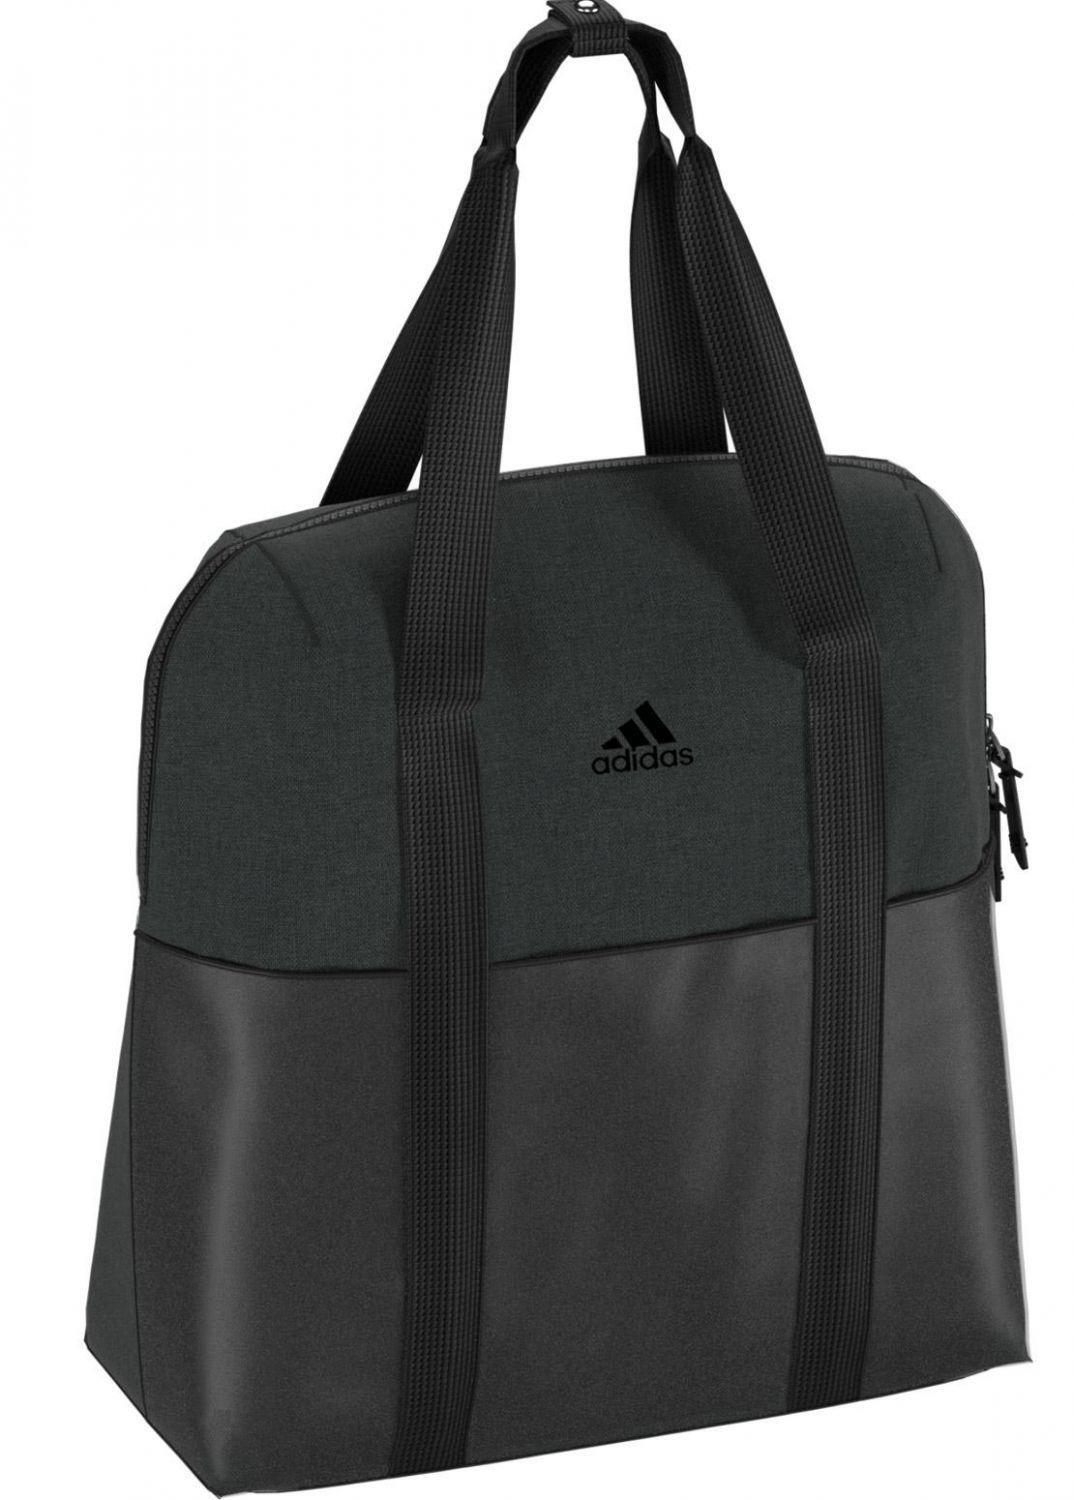 adidas-id-tote-umh-auml-ngetasche-farbe-black-black-carbon-